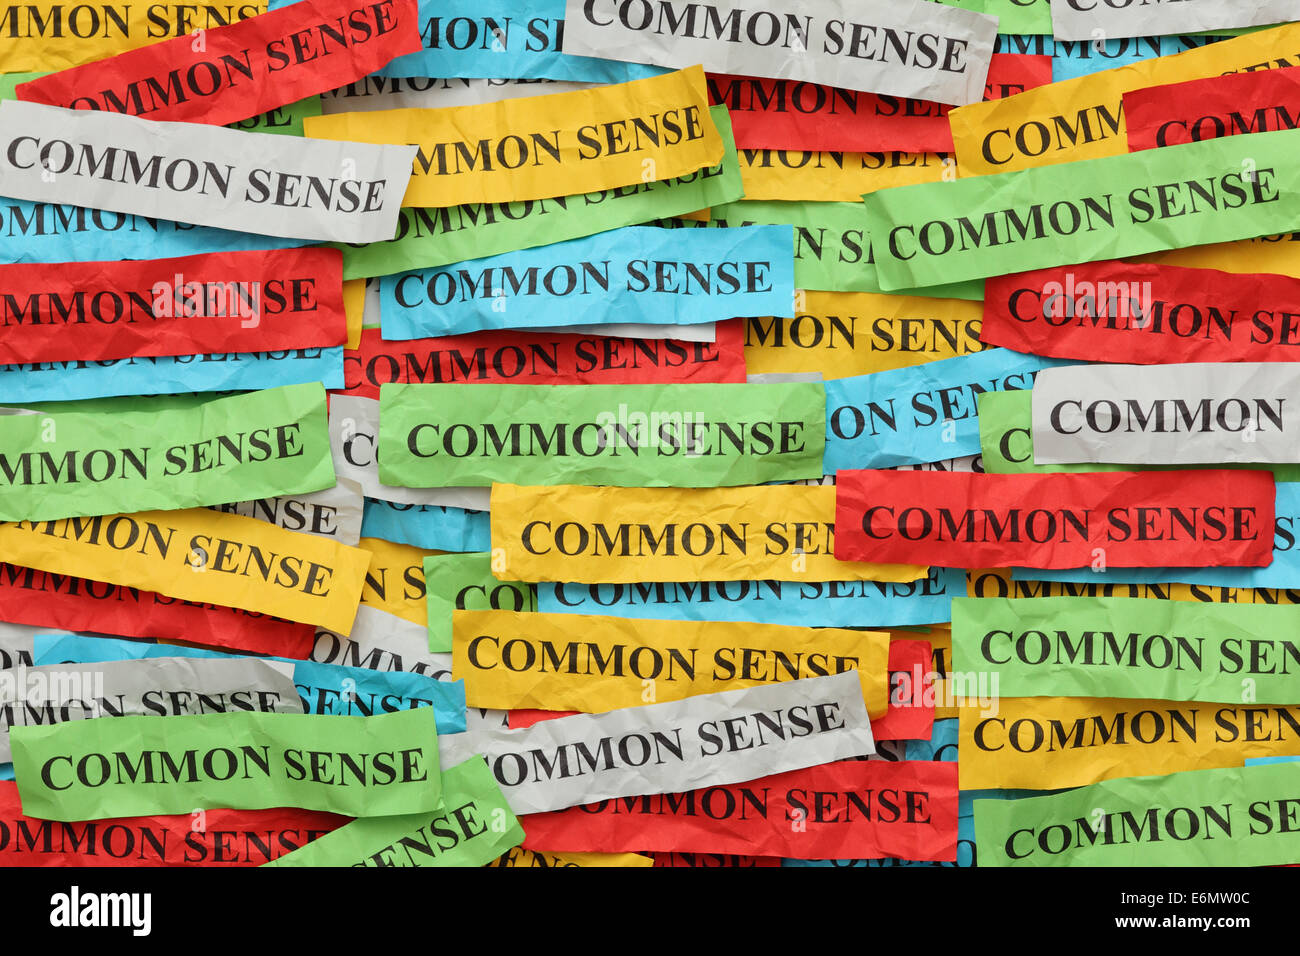 Pile of colorful paper notes with word 'Common Sense'. - Stock Image